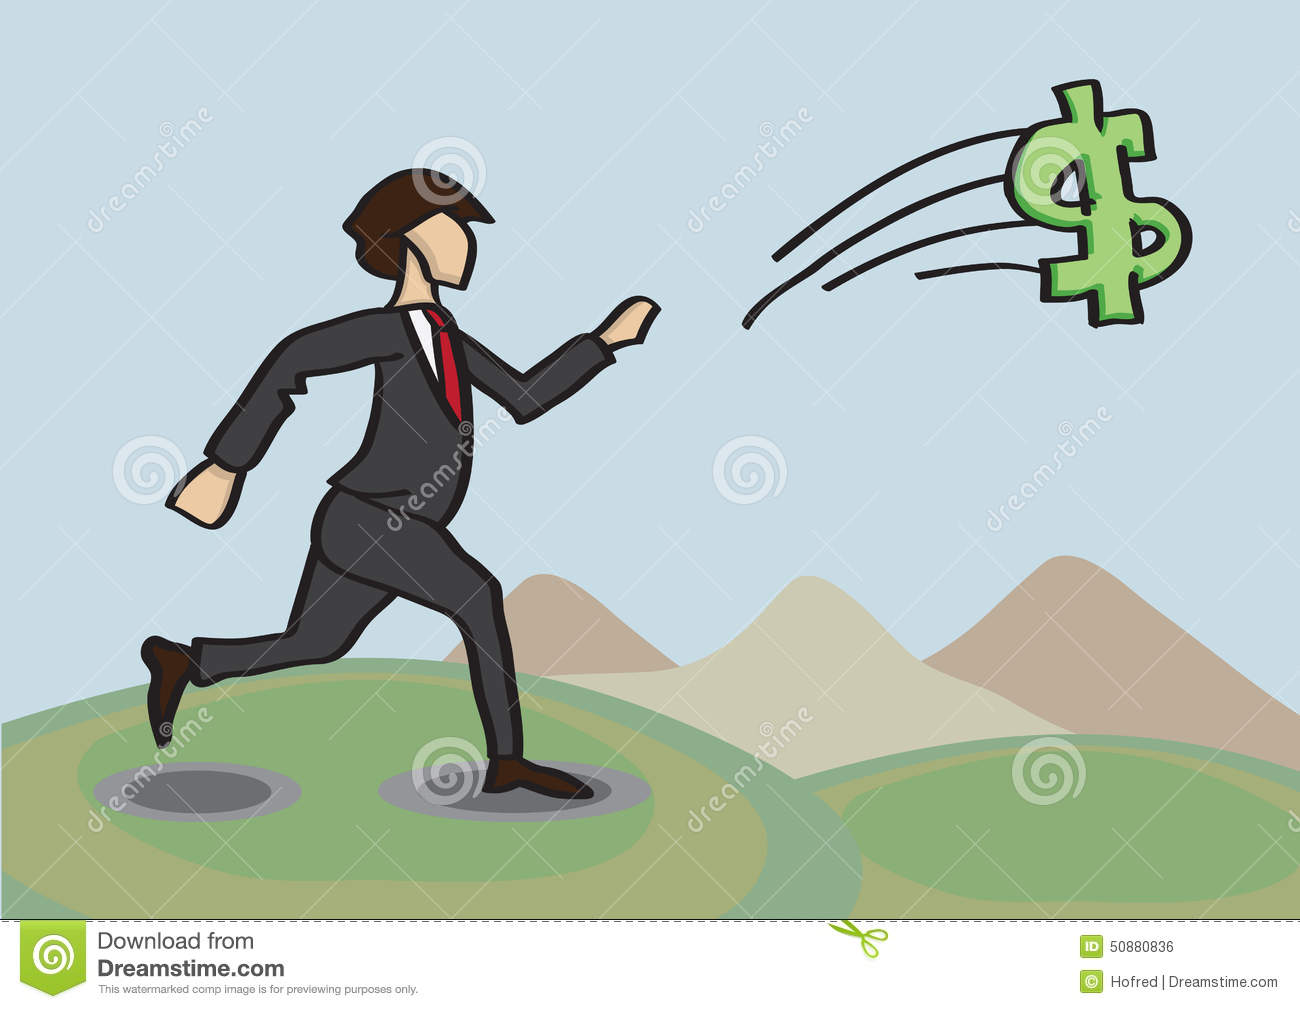 Chasing After Money Metaphor Vector Cartoon Illustration Stock Vector ...